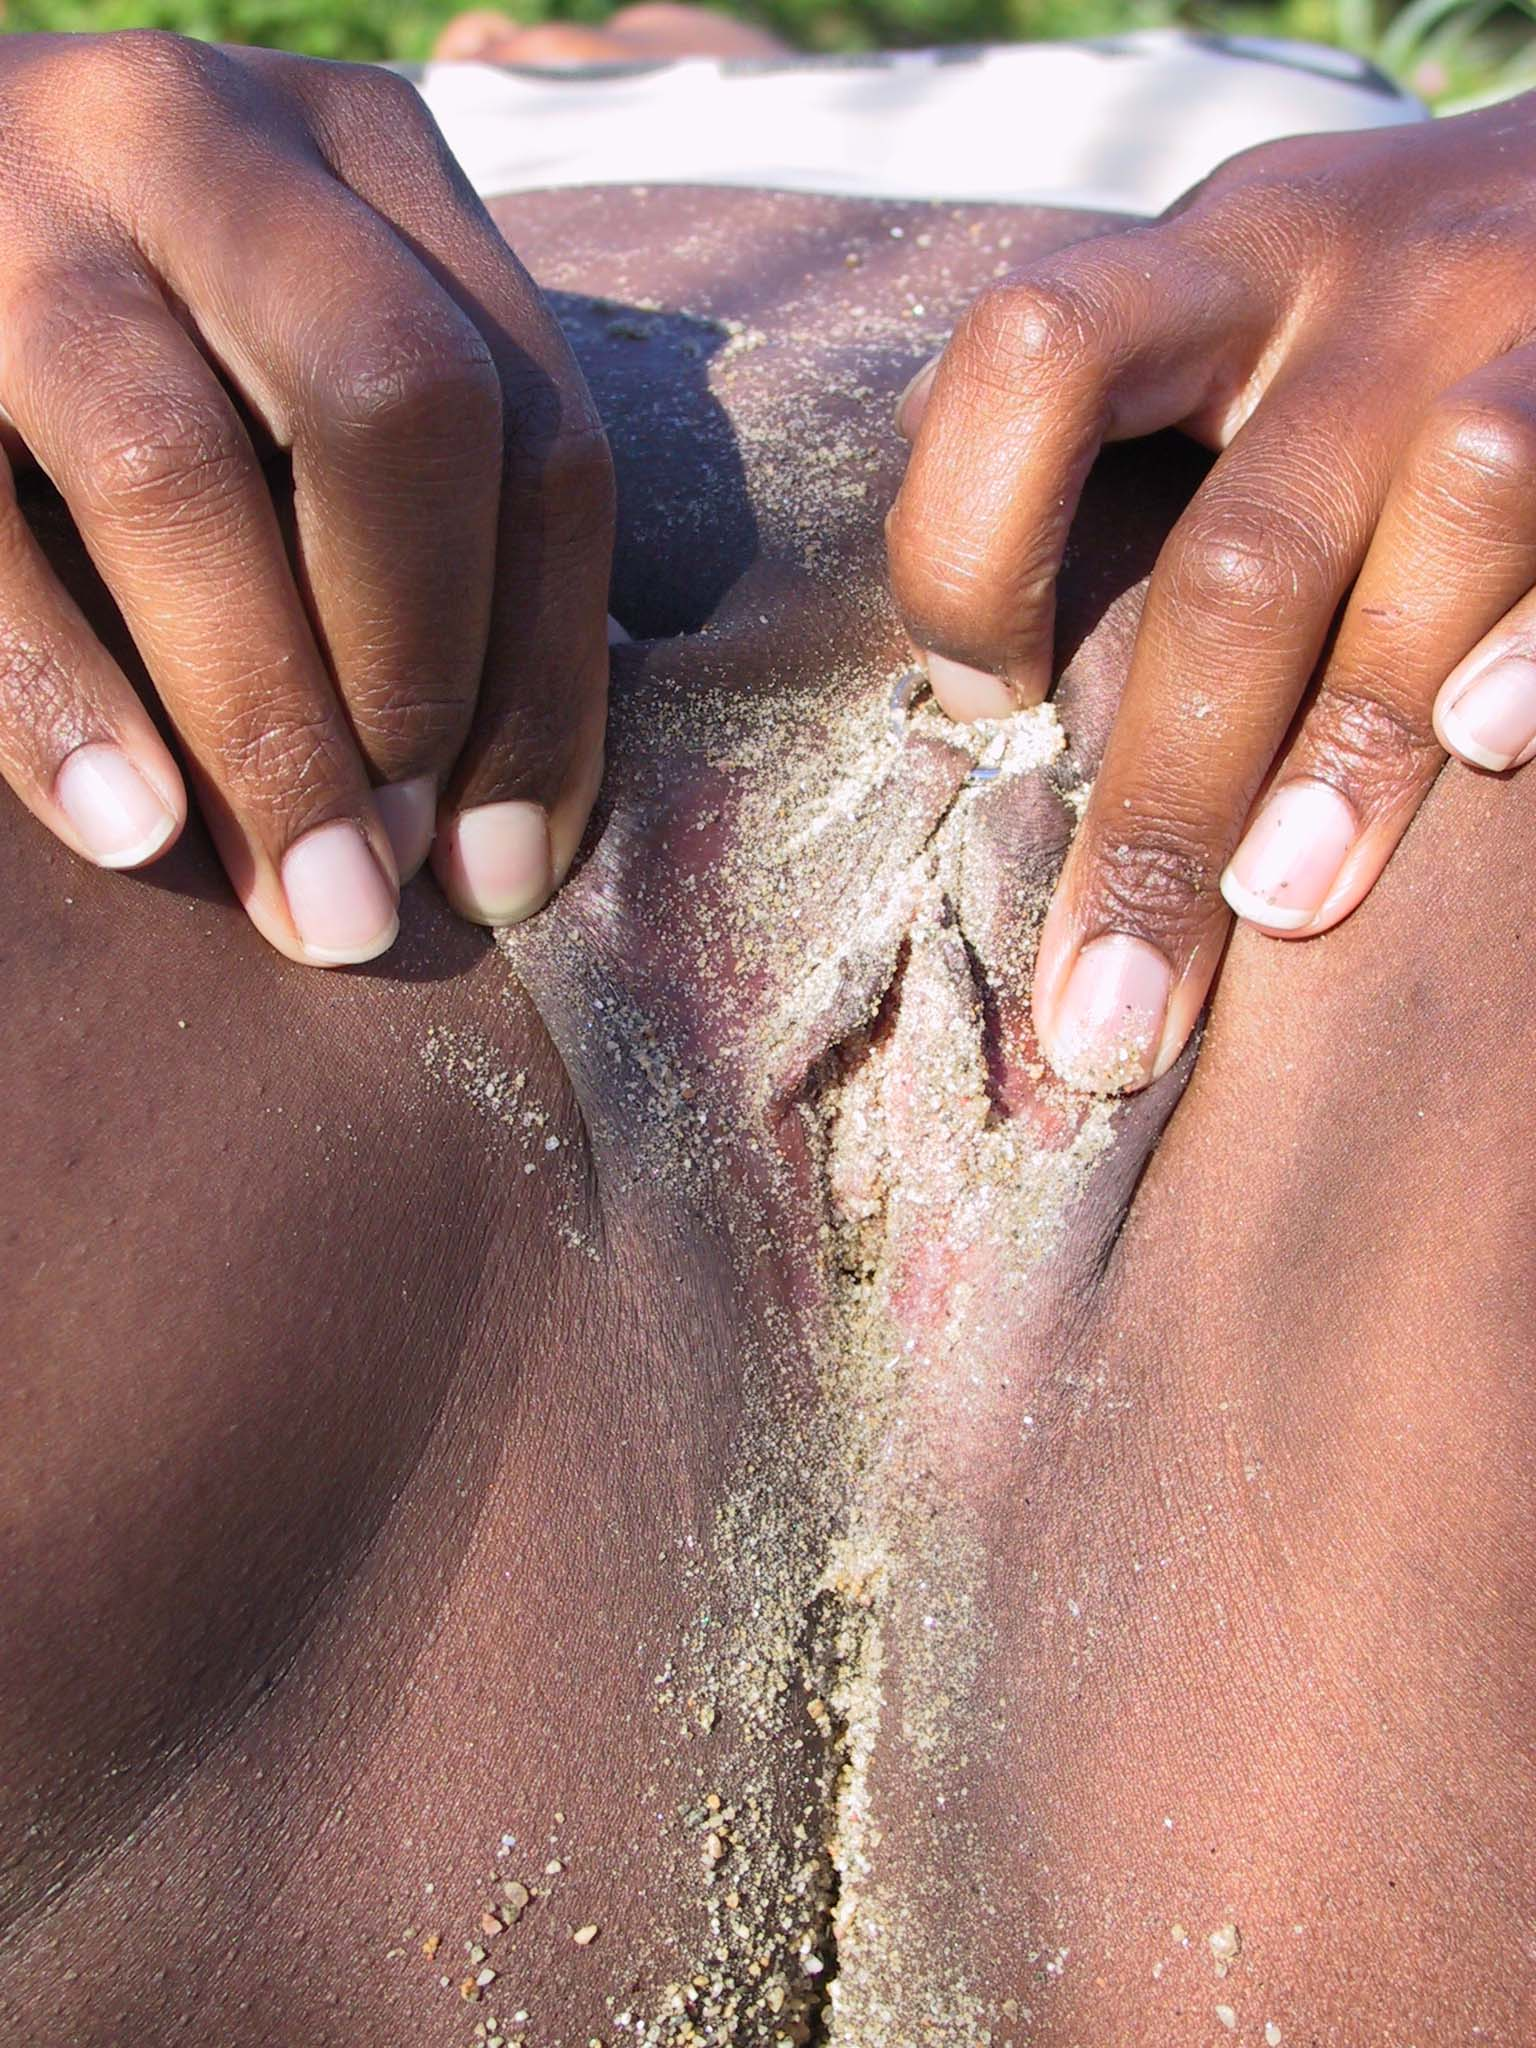 Xxx pic of girl rubbing cunt black lady